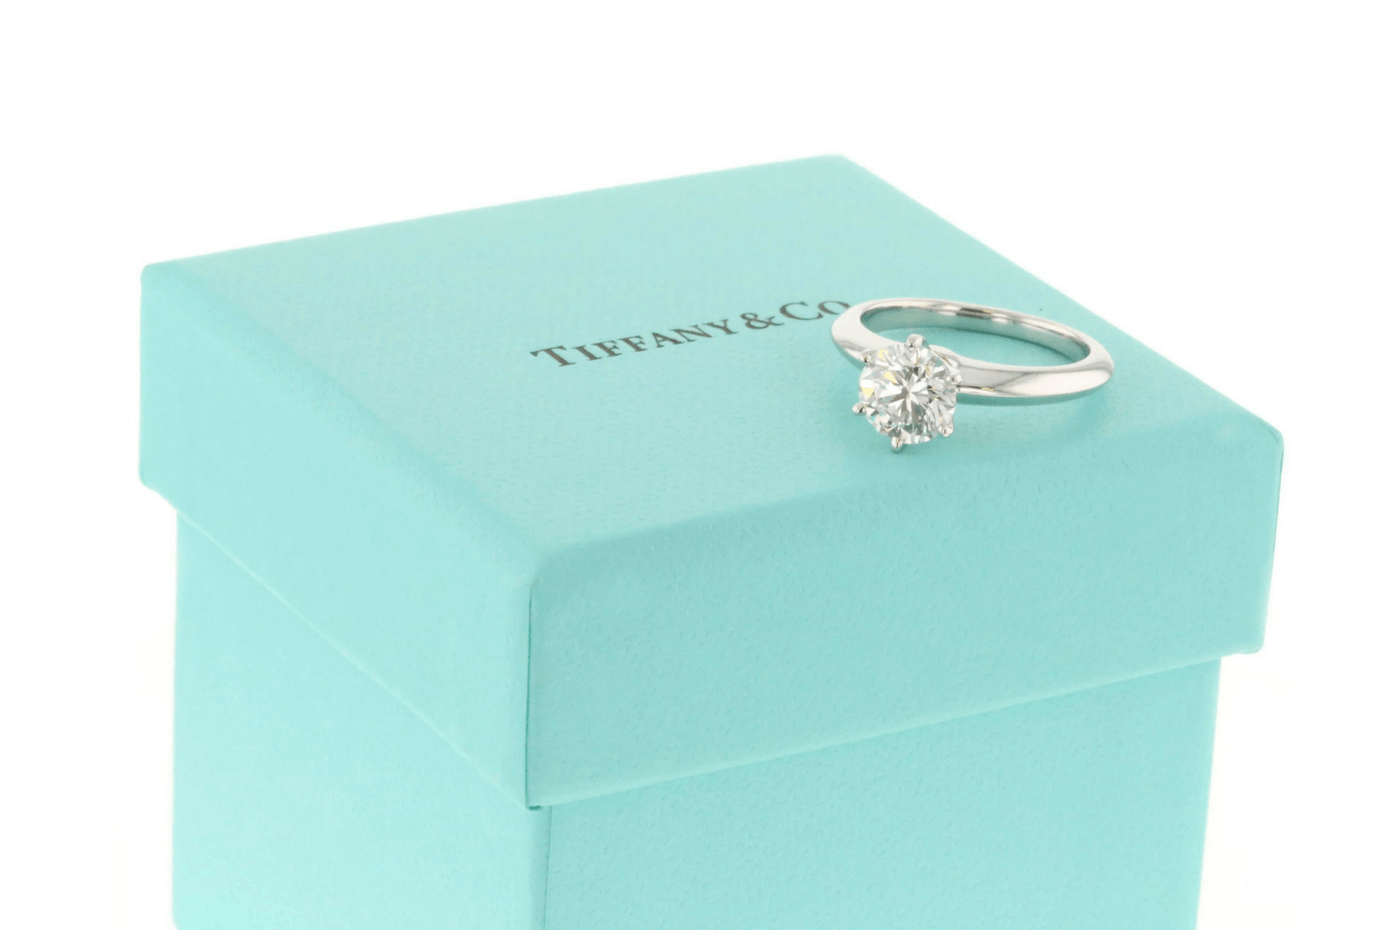 Tiffany Box (1)